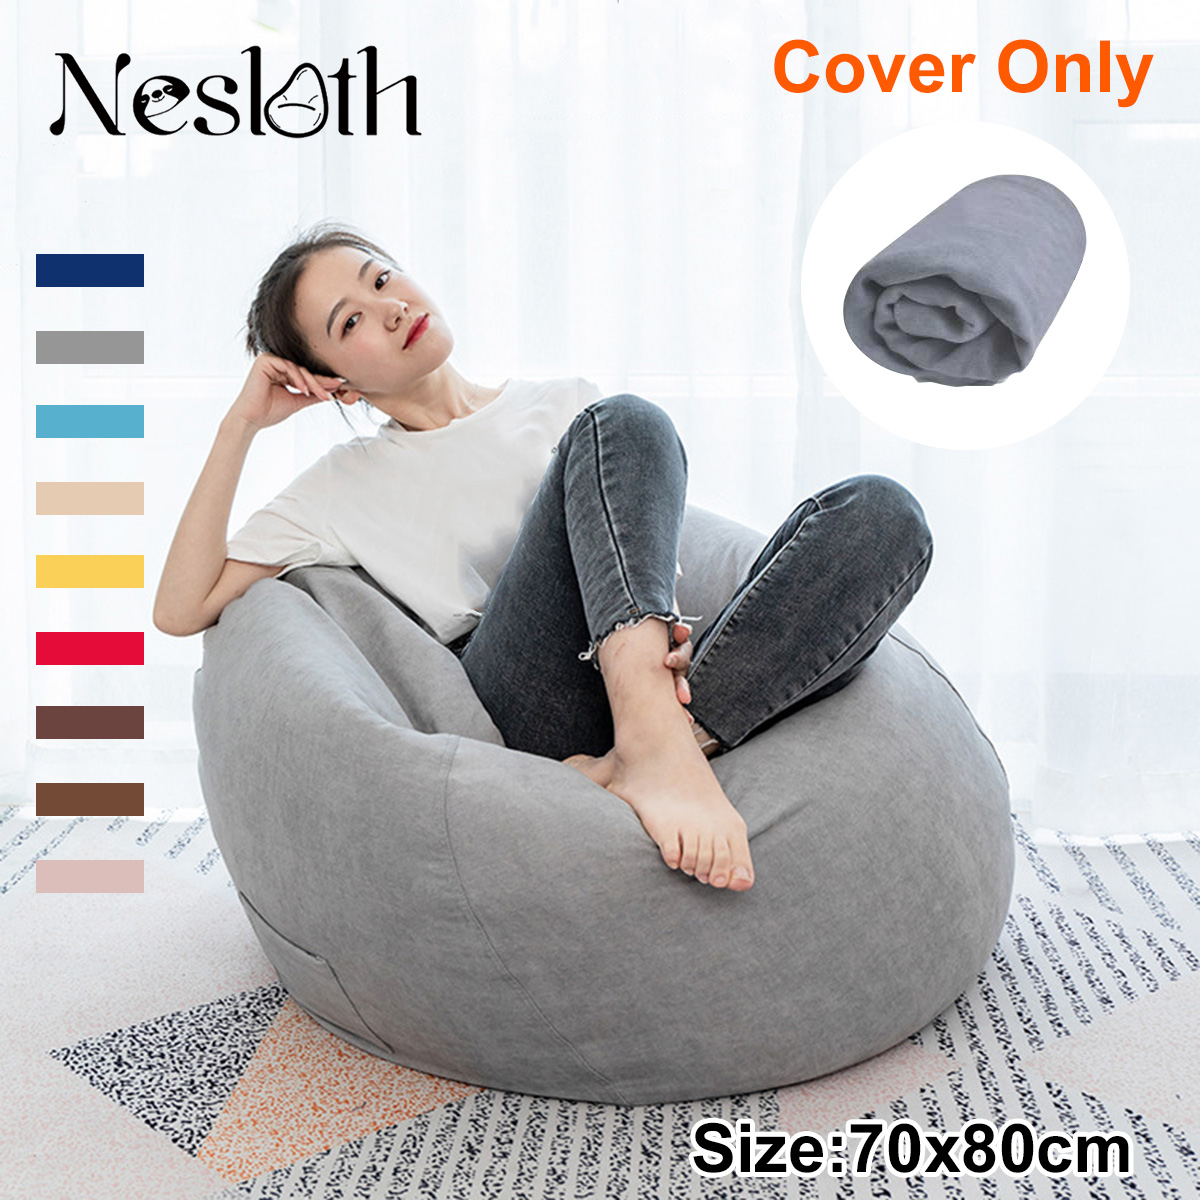 Nesloth Lazy BeanBag Sofa Cover Chair Without Filler Velvet Lounger Seat Bean Bag Pouf Puff Couch Tatami Living Room 70x80cm New